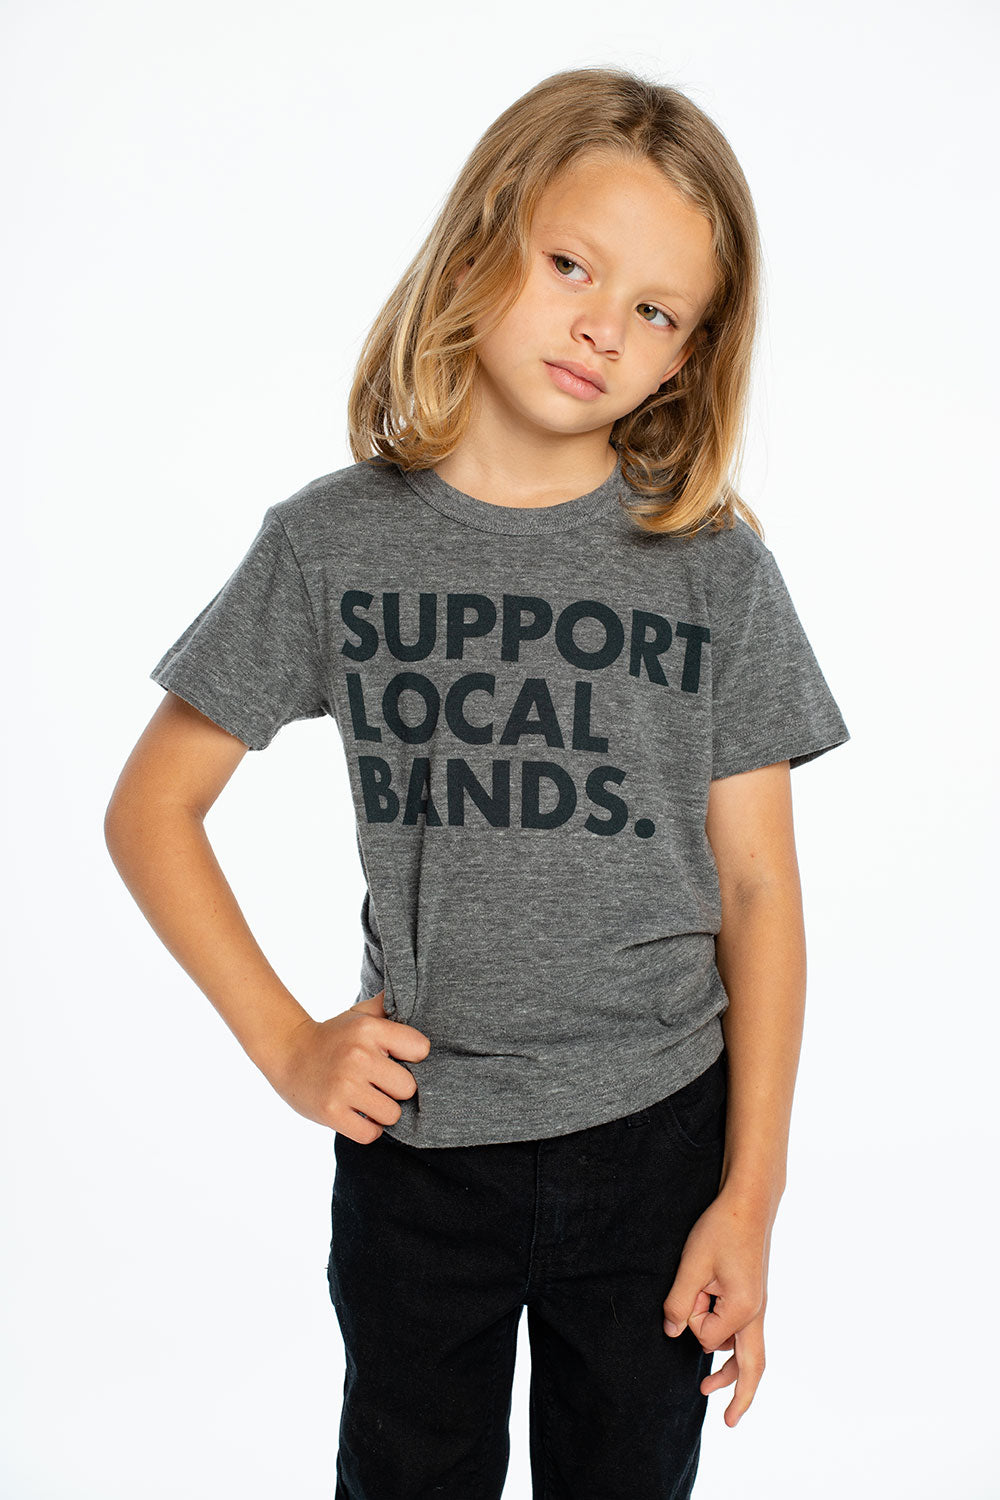 Support Local Bands